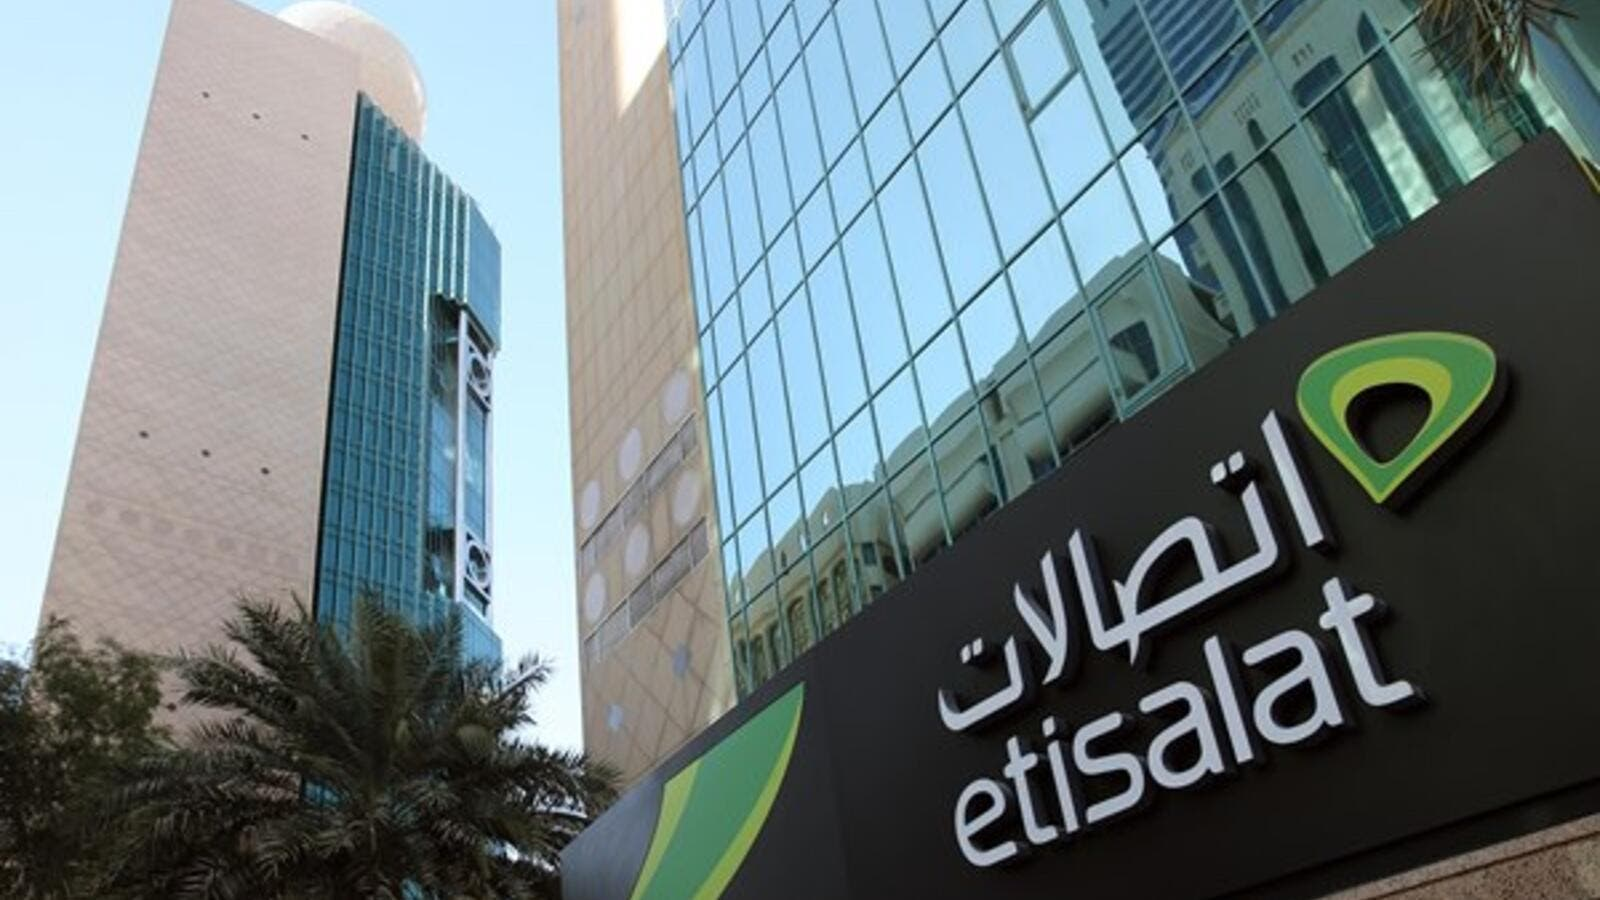 Etisalat Group's financial performance of the first half of this year showcased its ability to innovate and lead in the telecom and digital services arena. (File/ Photo)